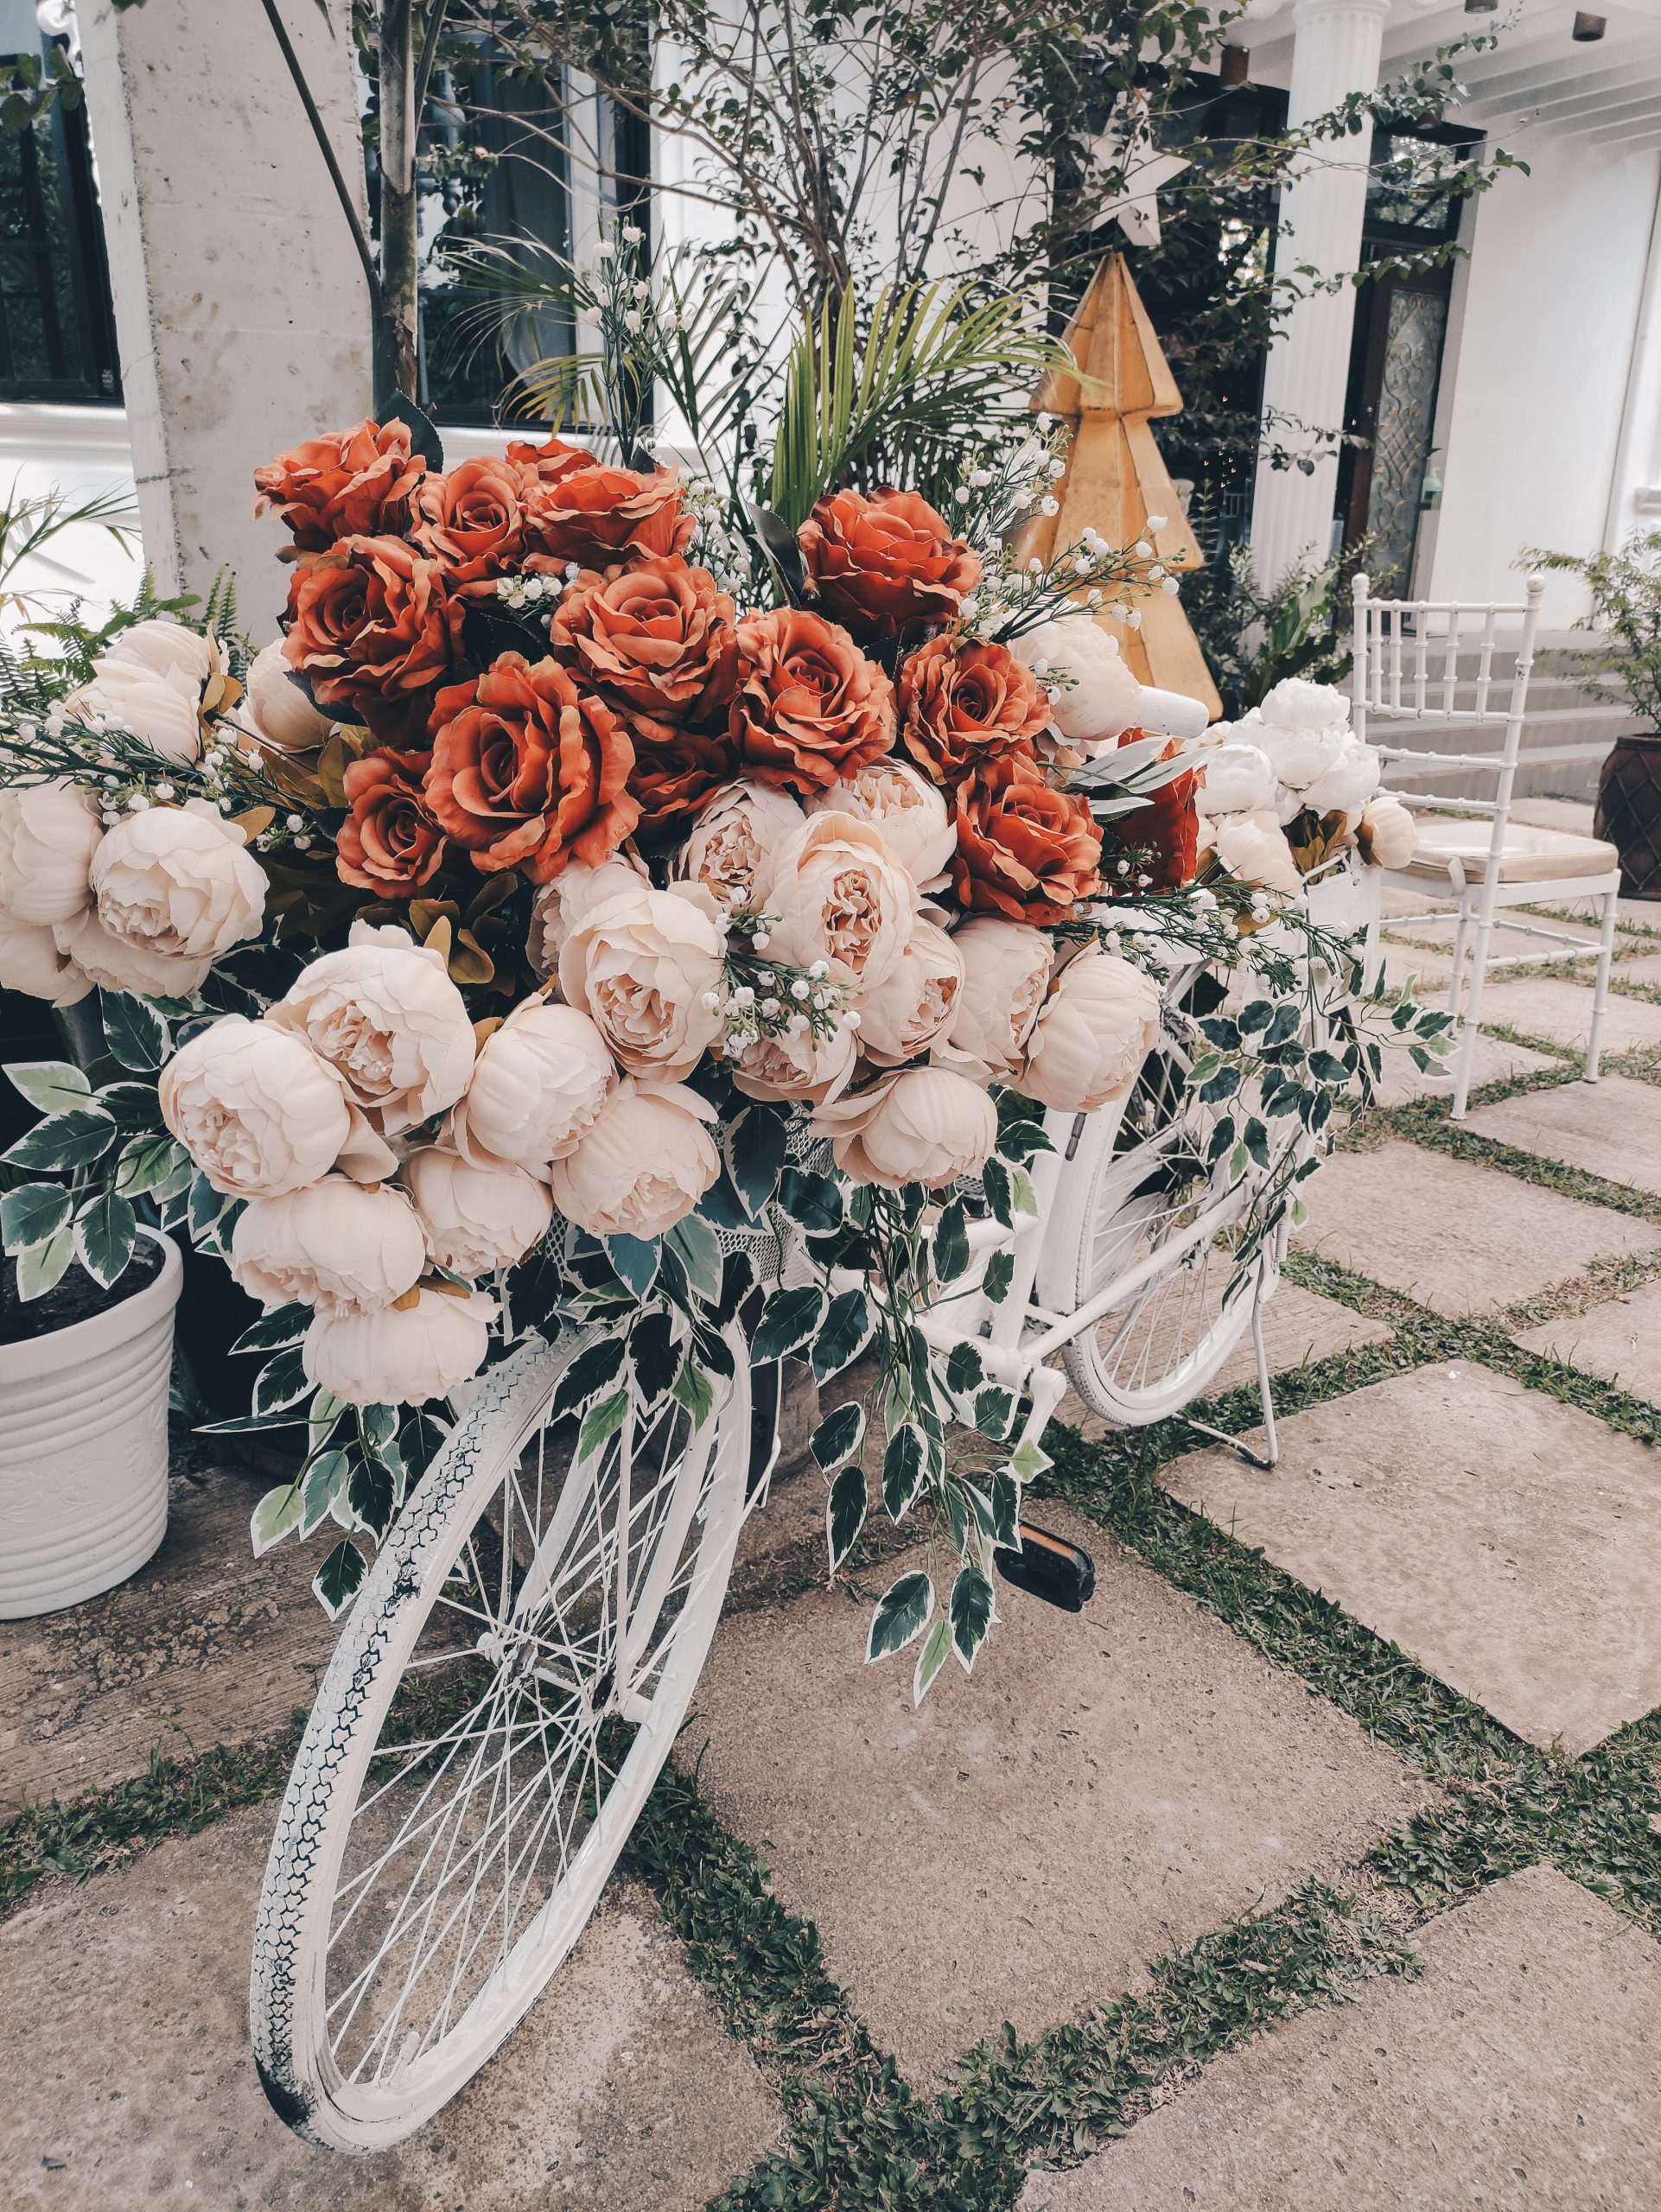 lj-country-estate-the-wedding-venue-that-made-our-wedding-great